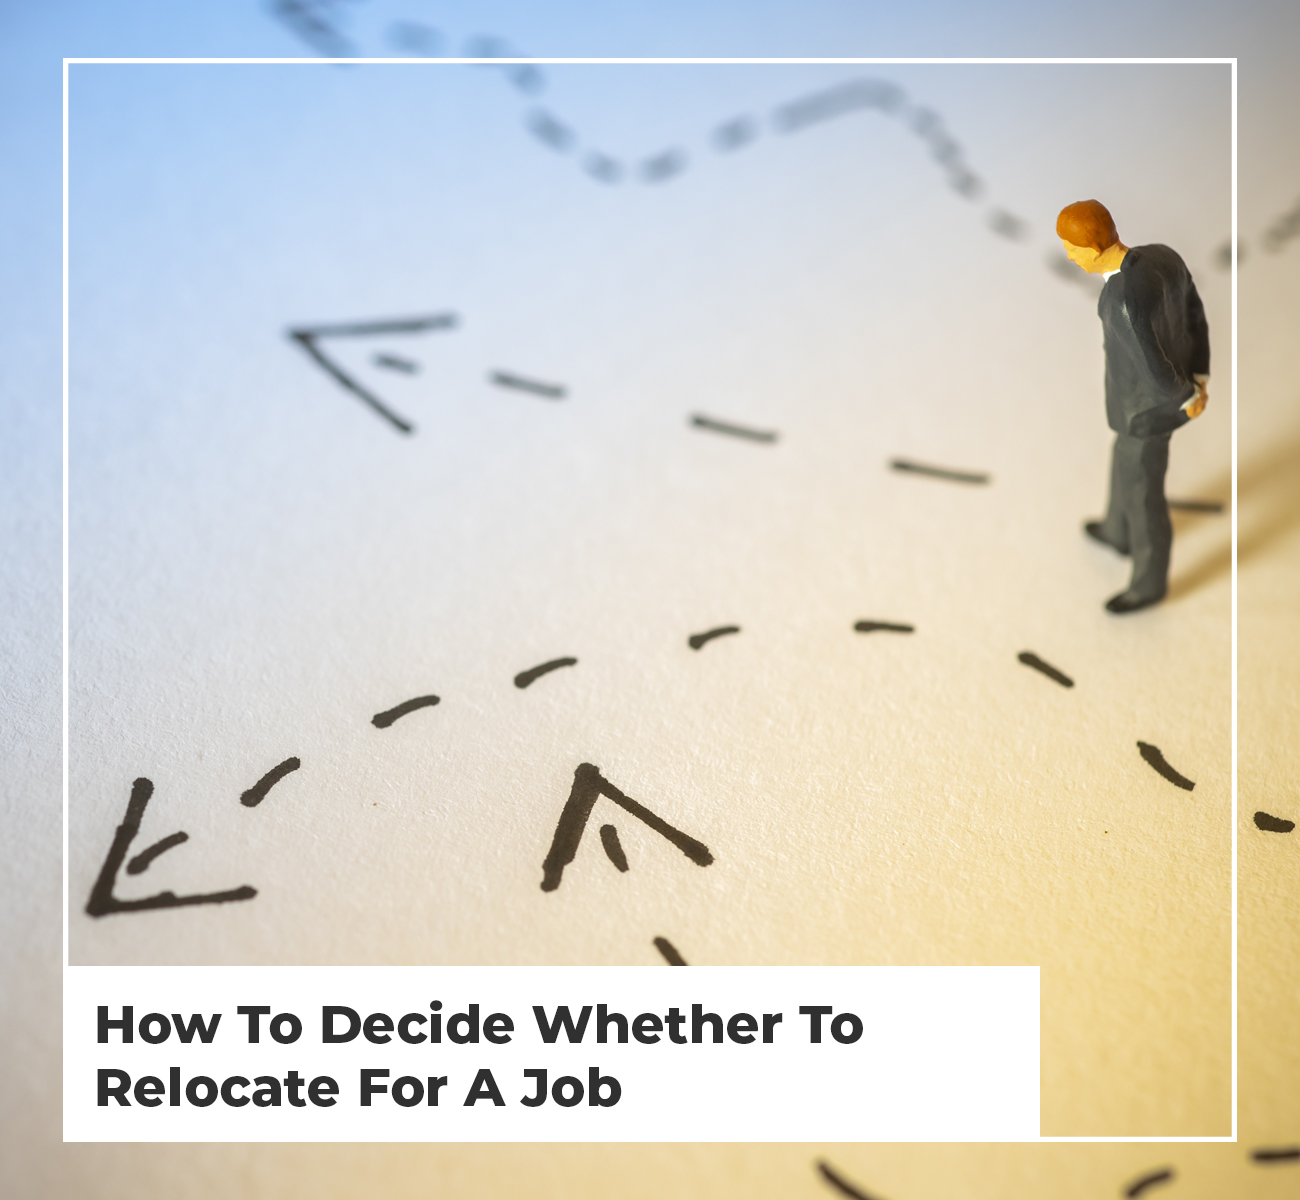 How To Decide Whether To Relocate For A Job